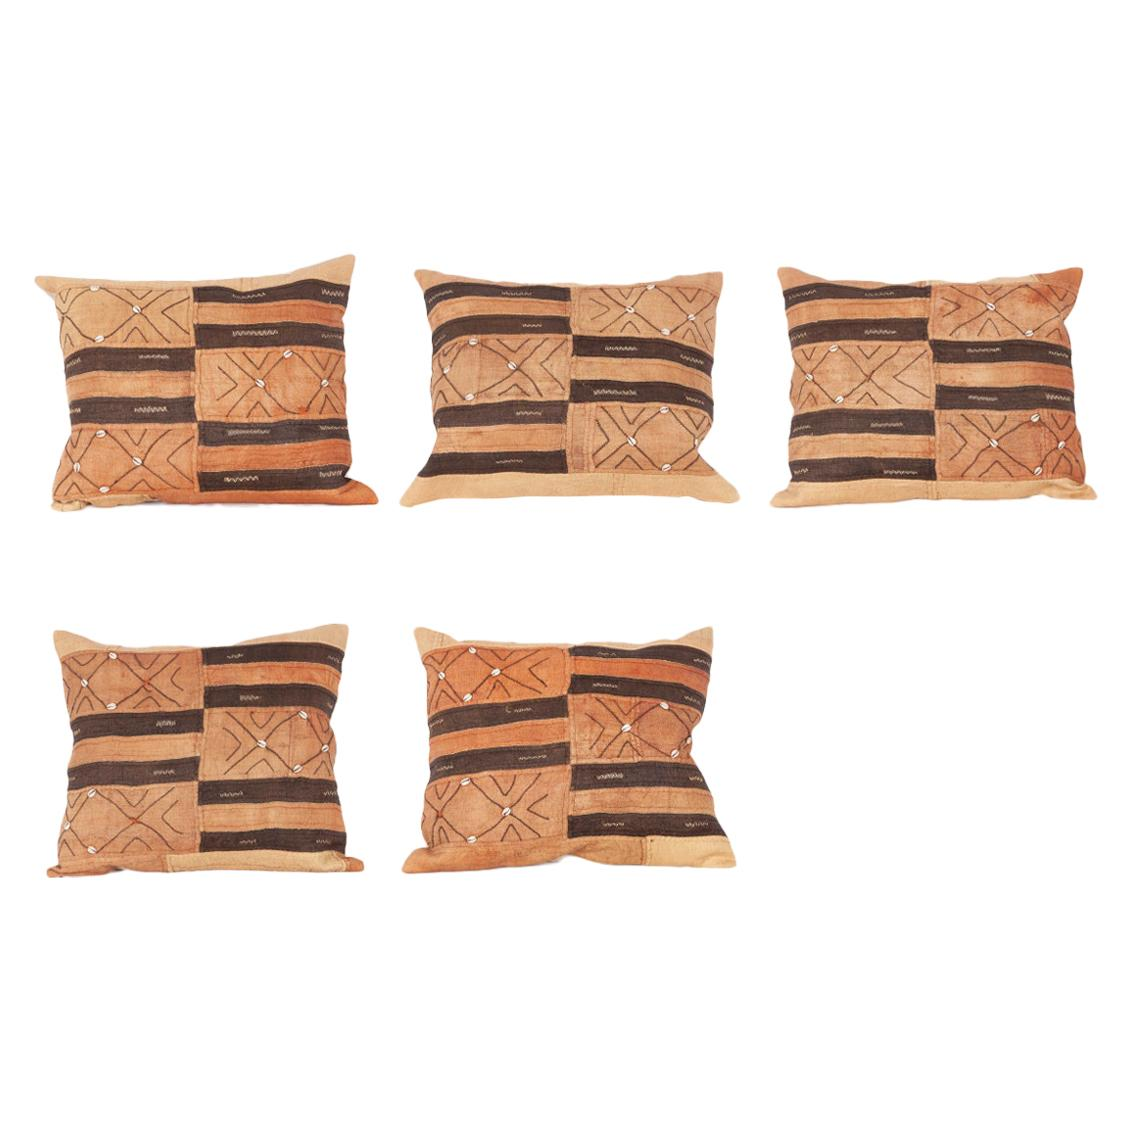 Vintage African Kuba Cloth Pillow Cases, Mid-20th Century